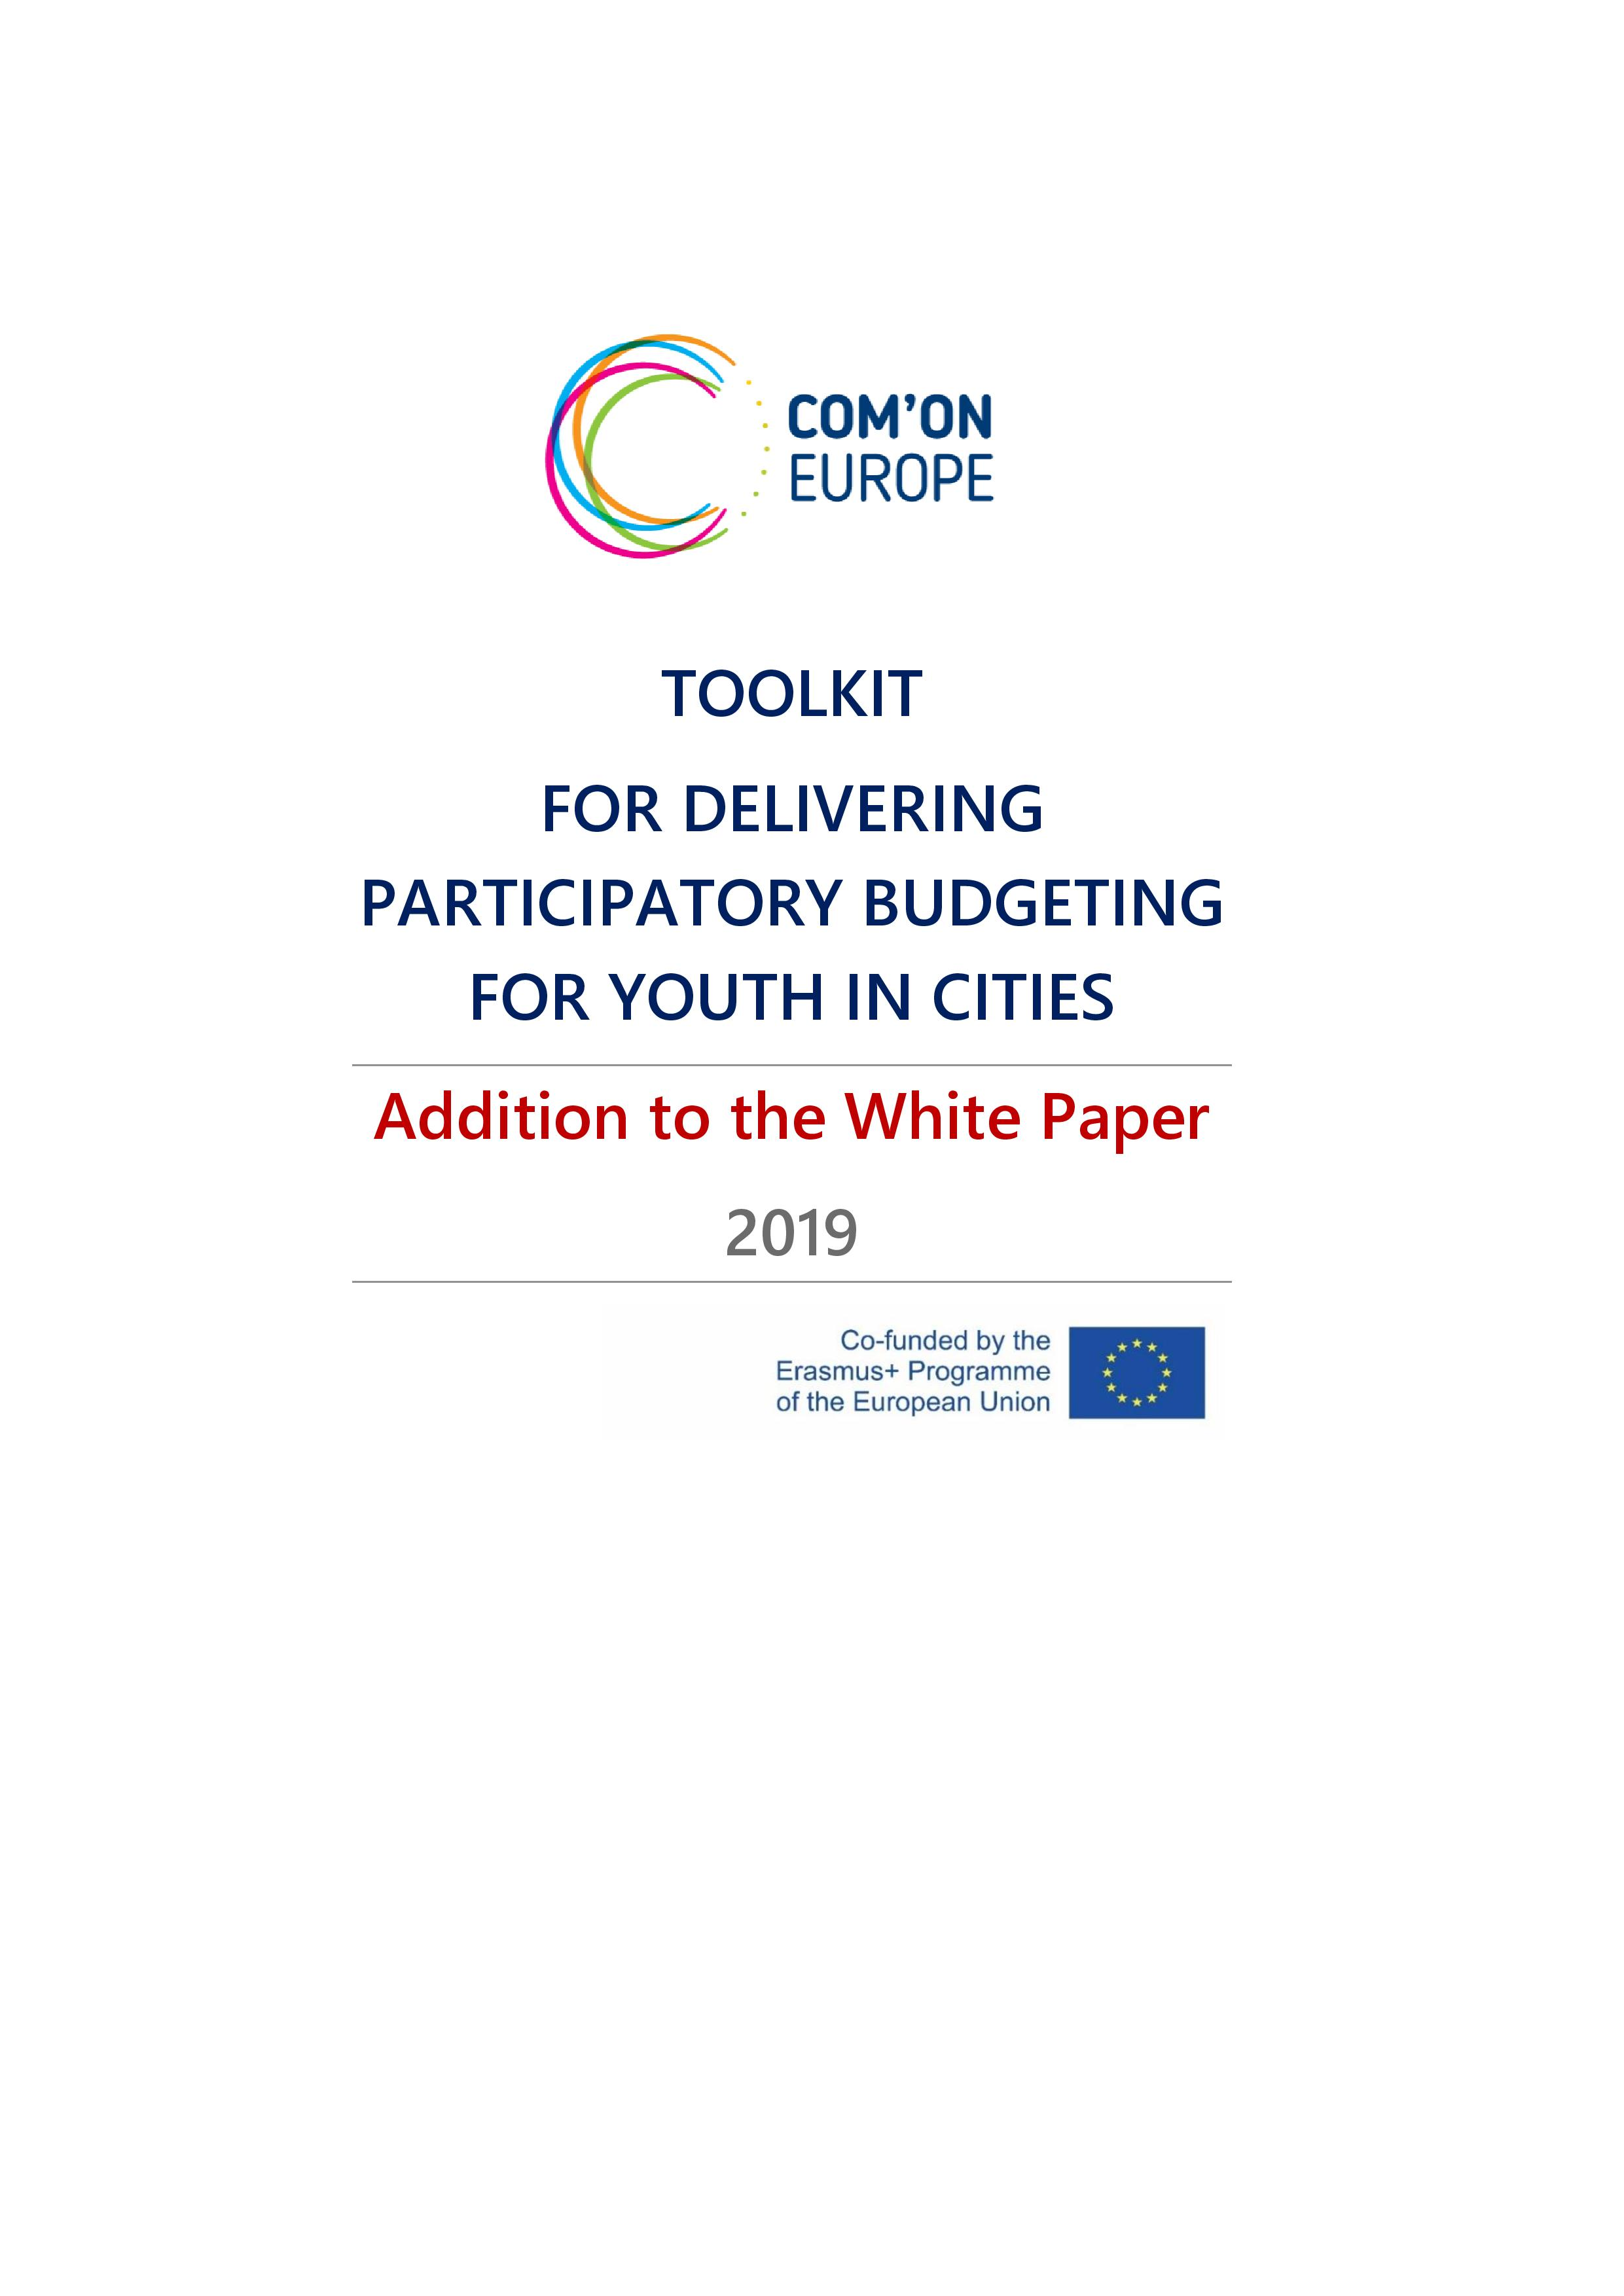 Toolkit For Delivering Participatory Budgeting For Youth In Cities - Addition To The White Paper